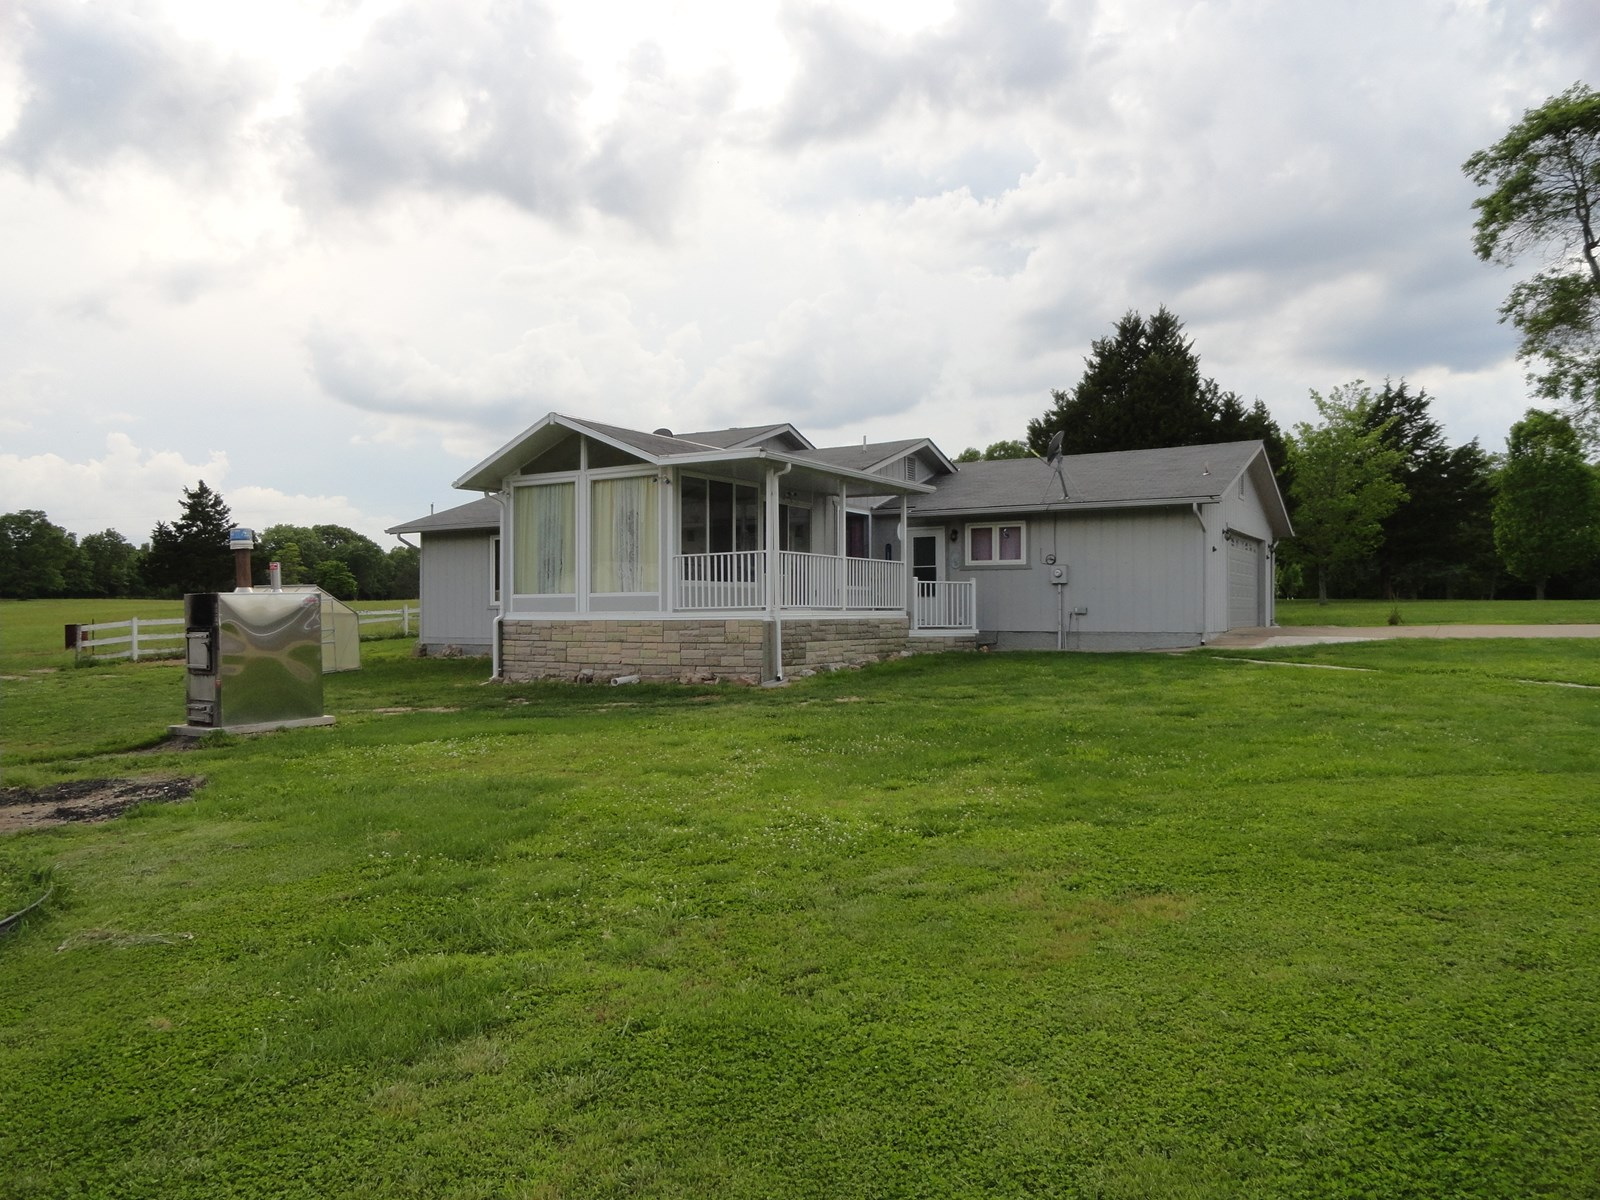 FOR SALE MINI FARM IN  CAMDEN COUNTY MISSOURI